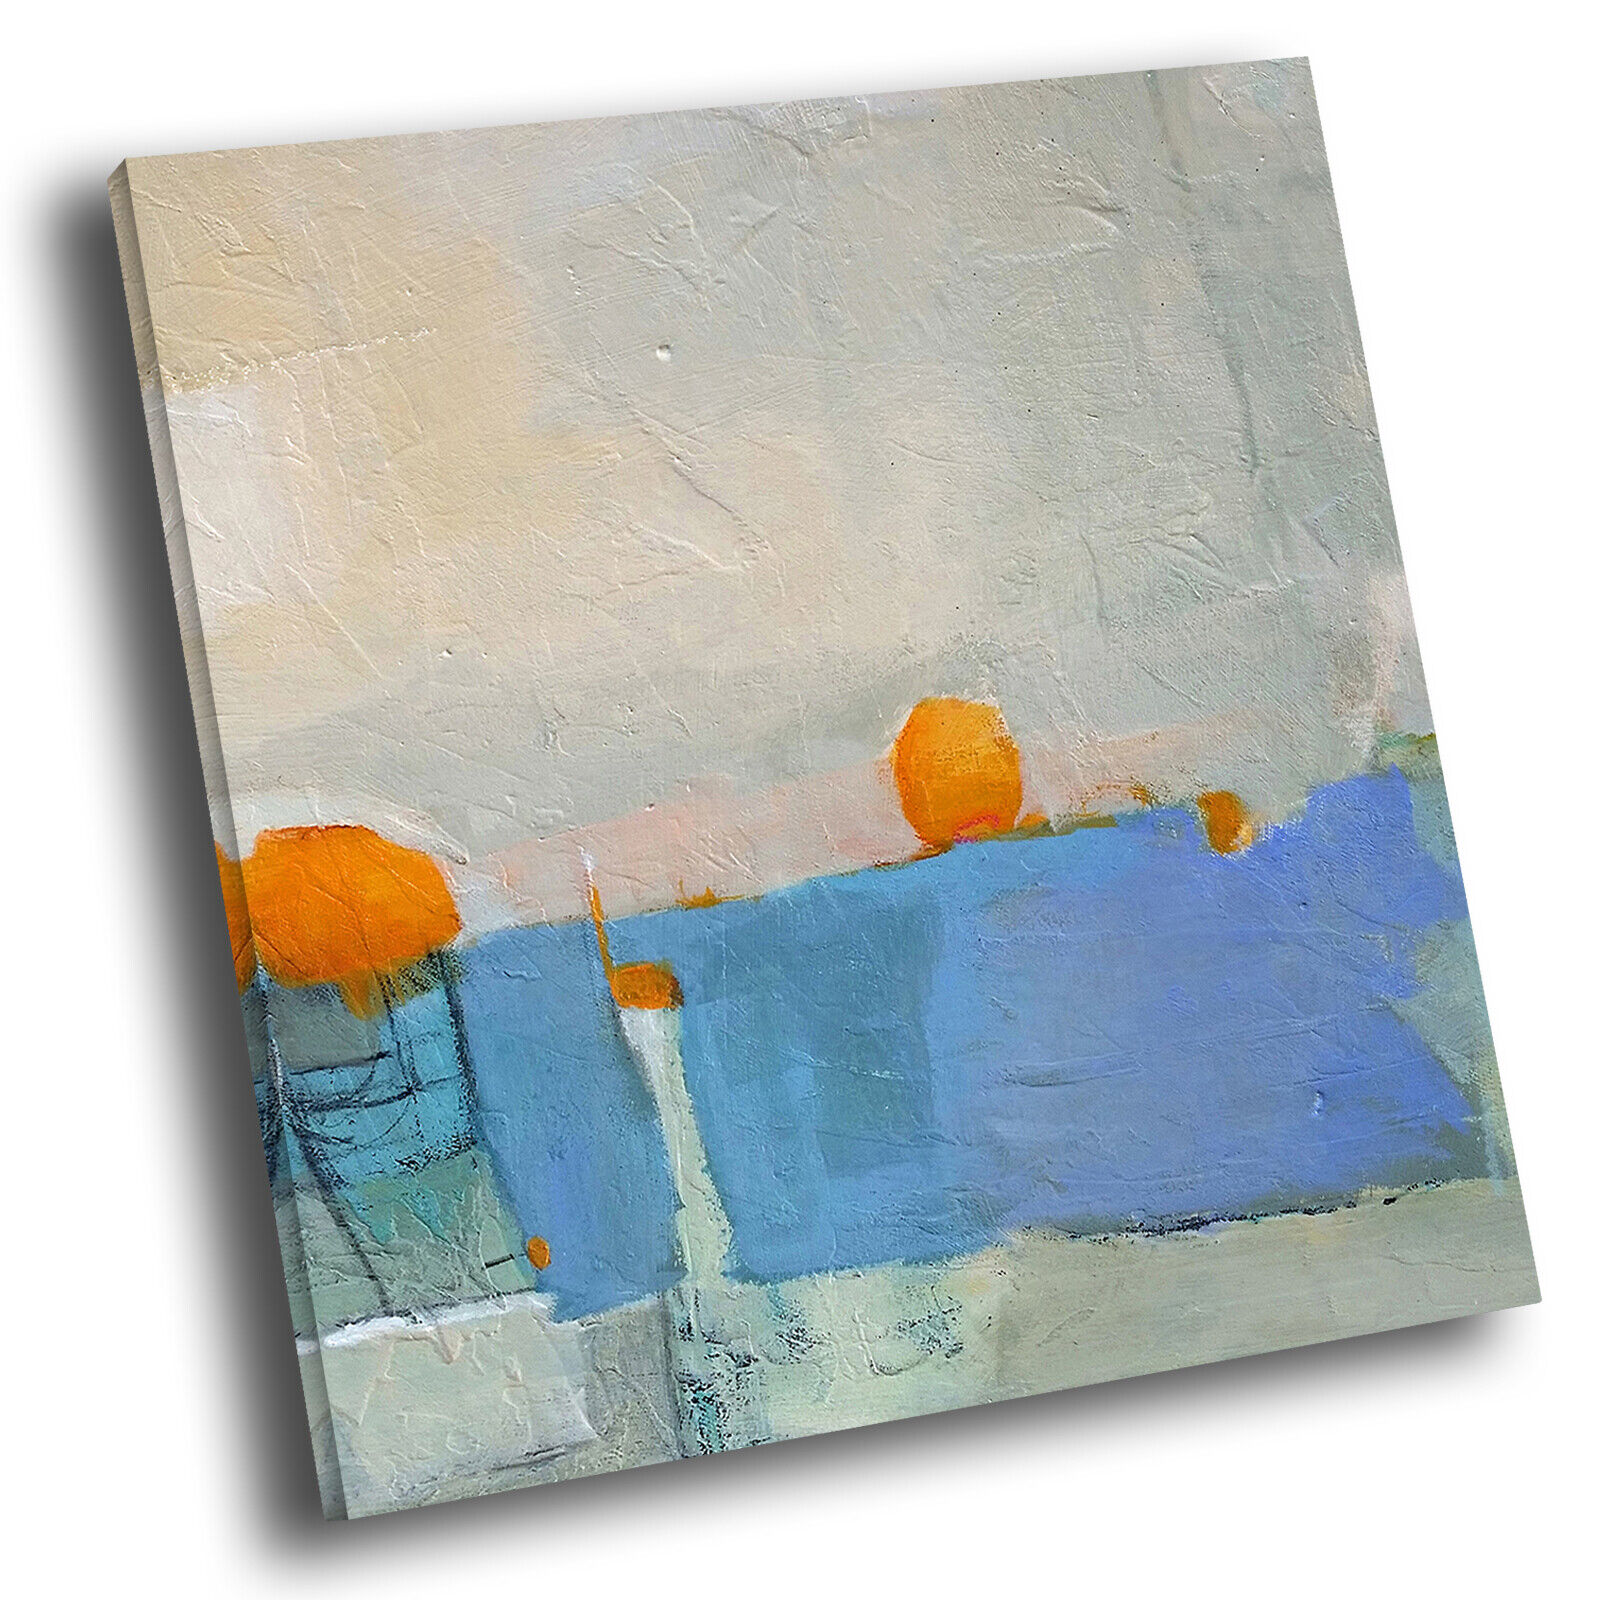 Blau Orange Weiß Square Abstract Photo Canvas Wall Art Large Picture Prints